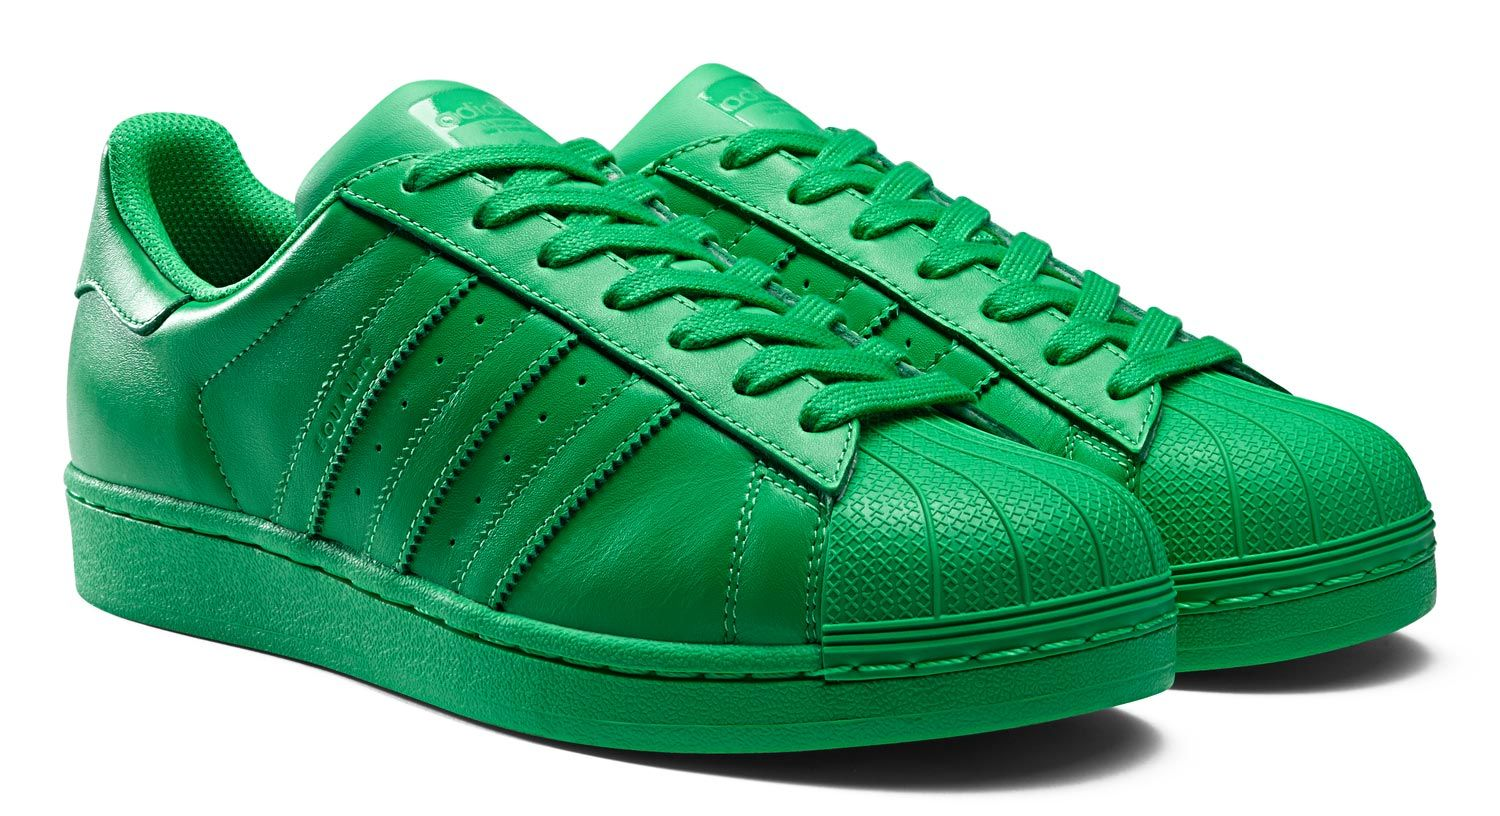 Adidas Superstar Blue Green